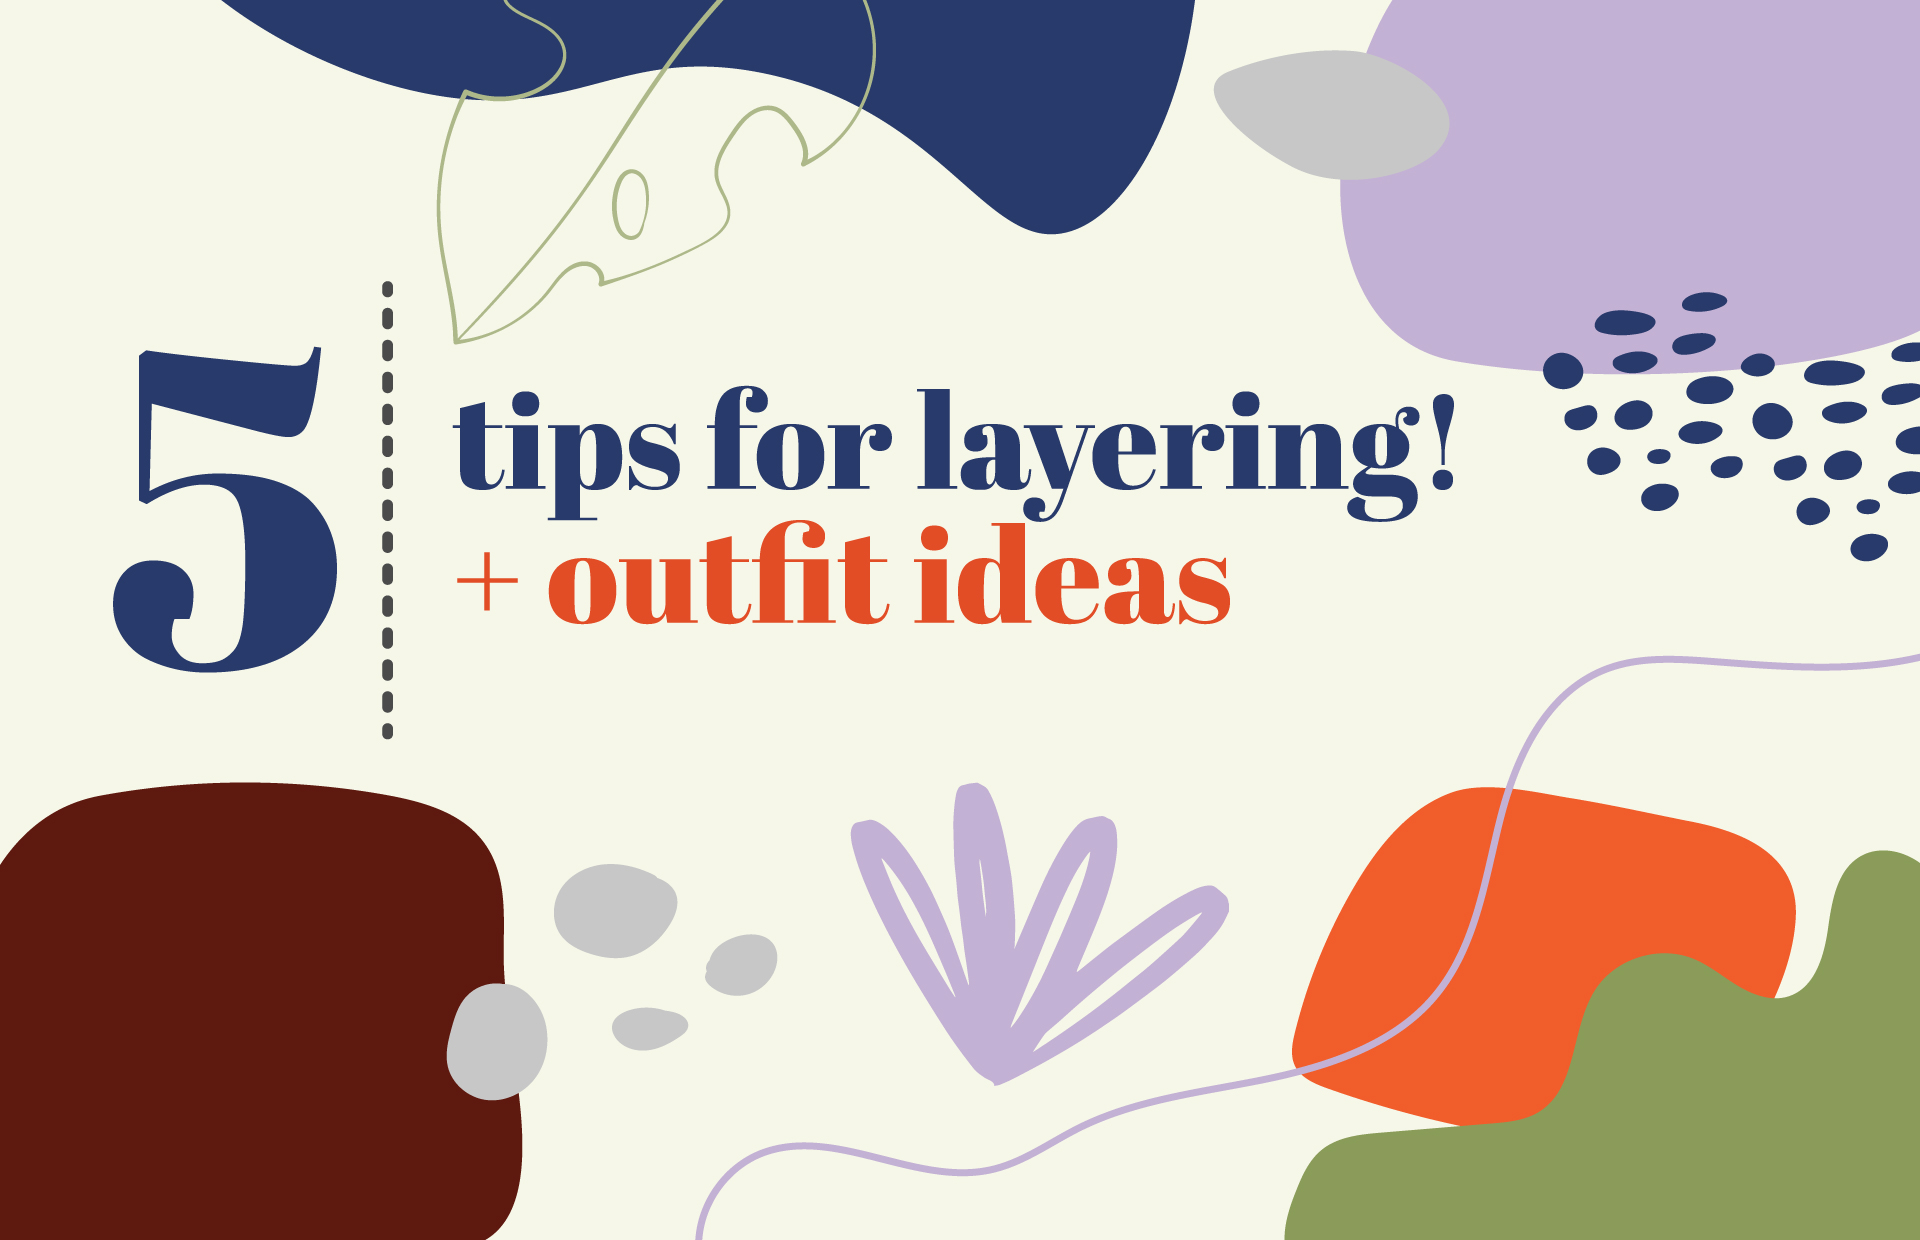 5 tips for layering